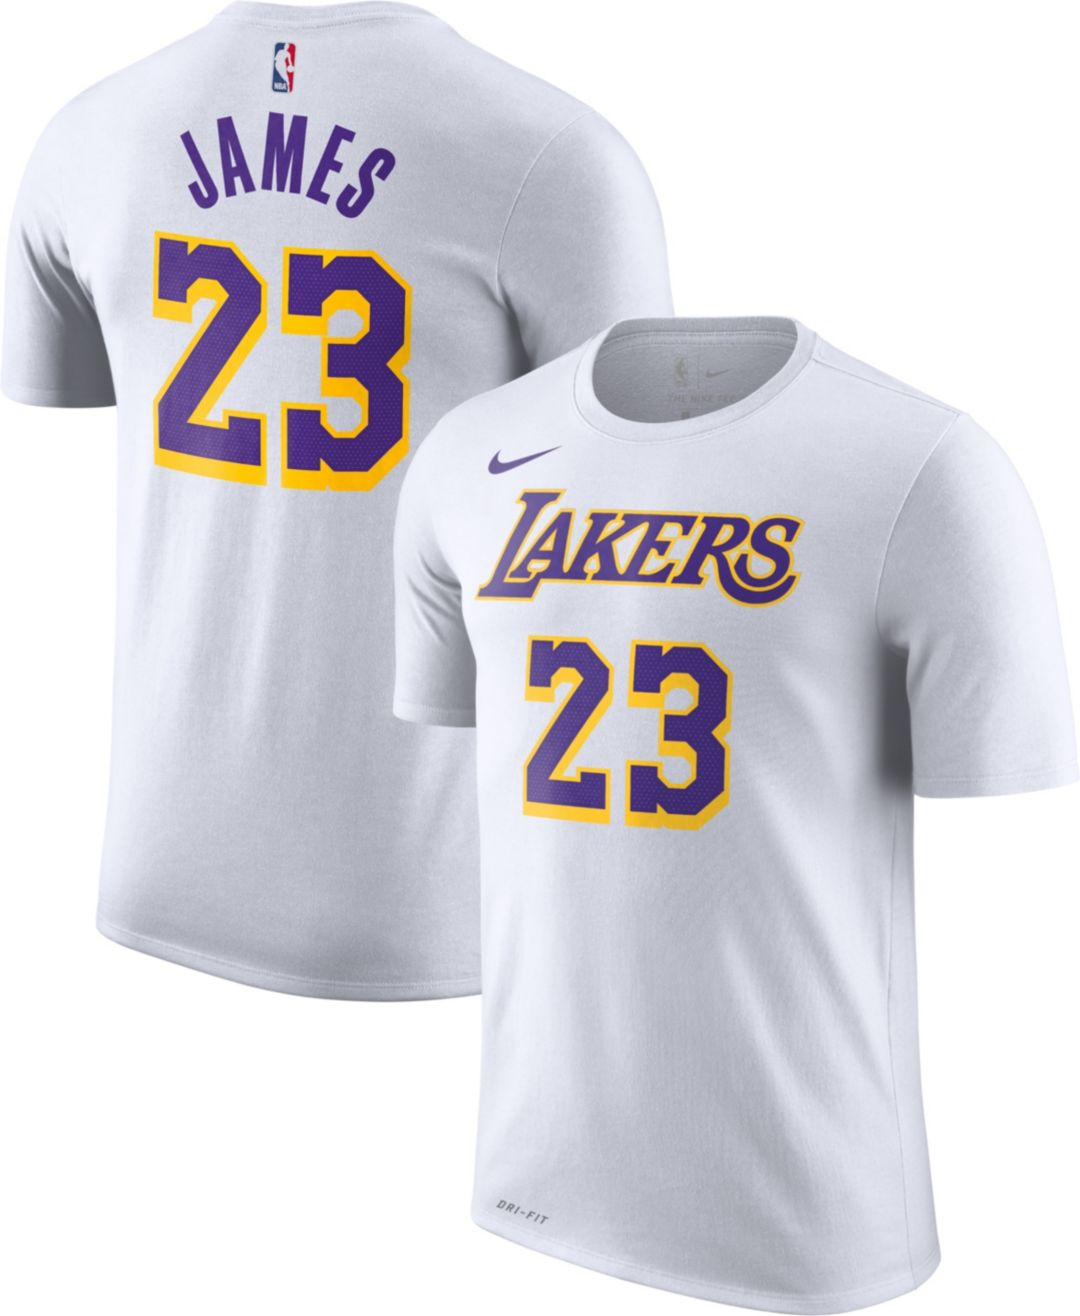 new styles b3aeb 75d8c Nike Youth Los Angeles Lakers LeBron James Dri-FIT White T-Shirt